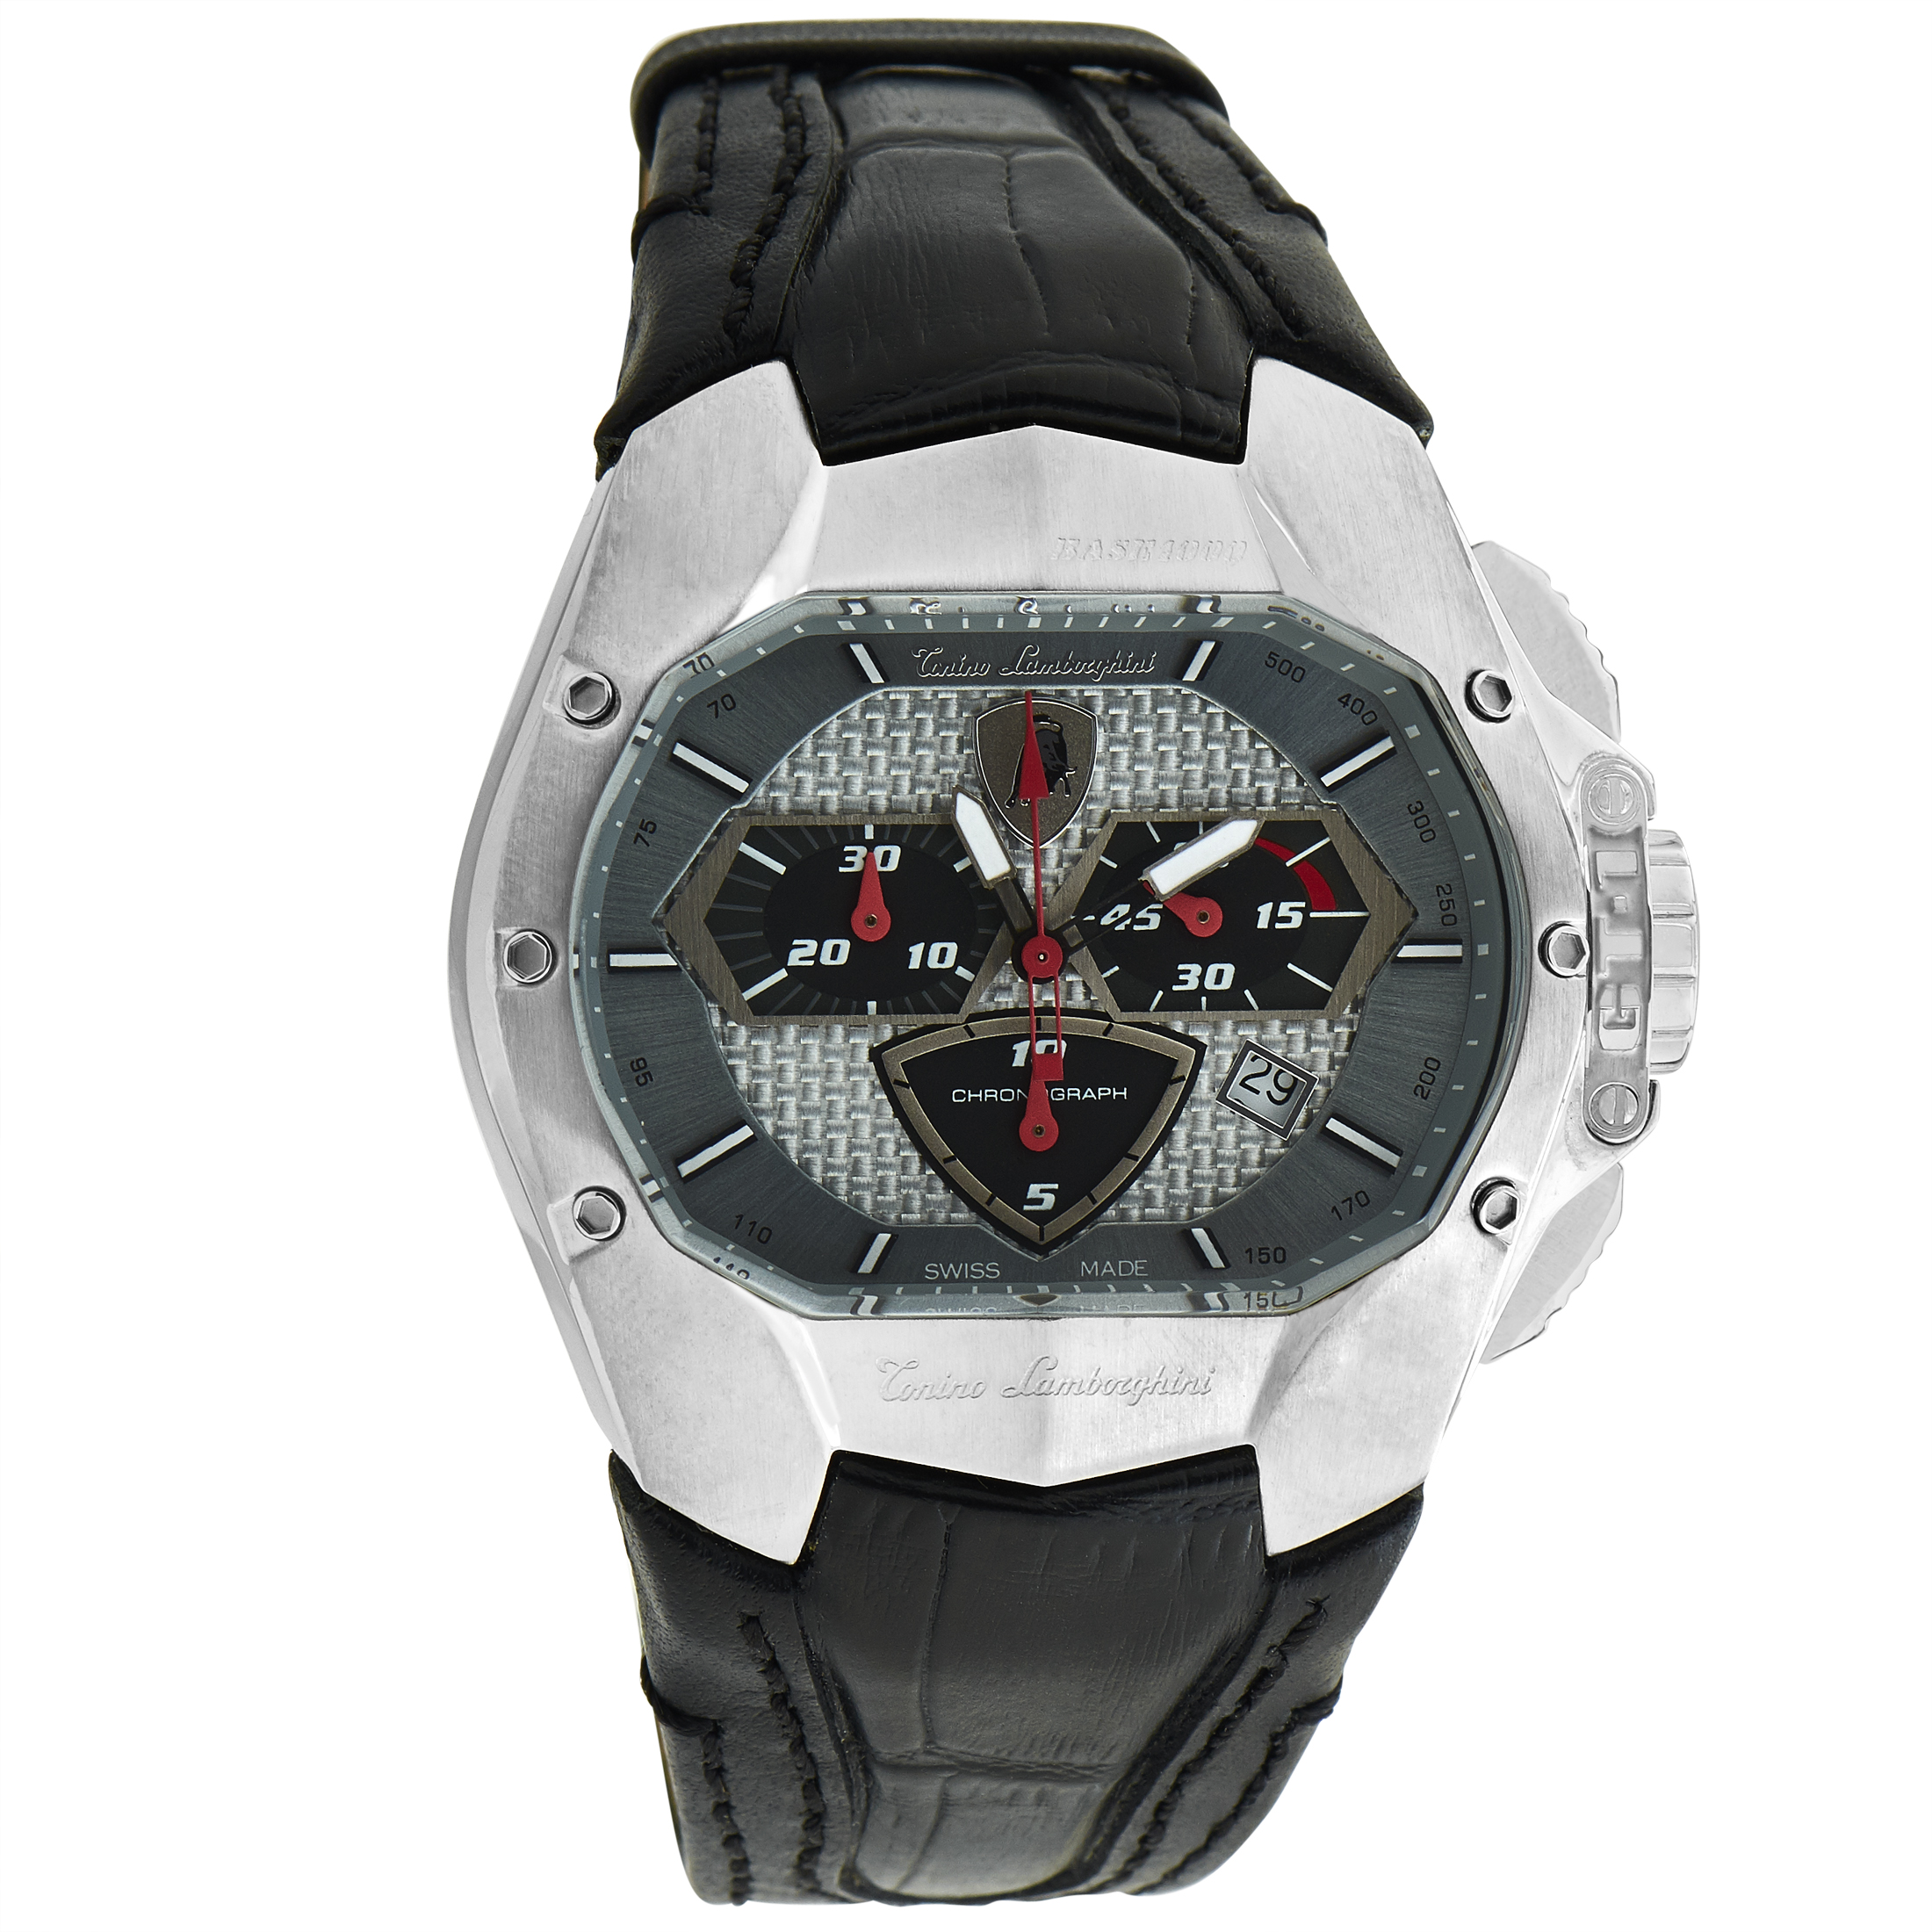 Men's GT1 Quartz Chronograph Watch 860S